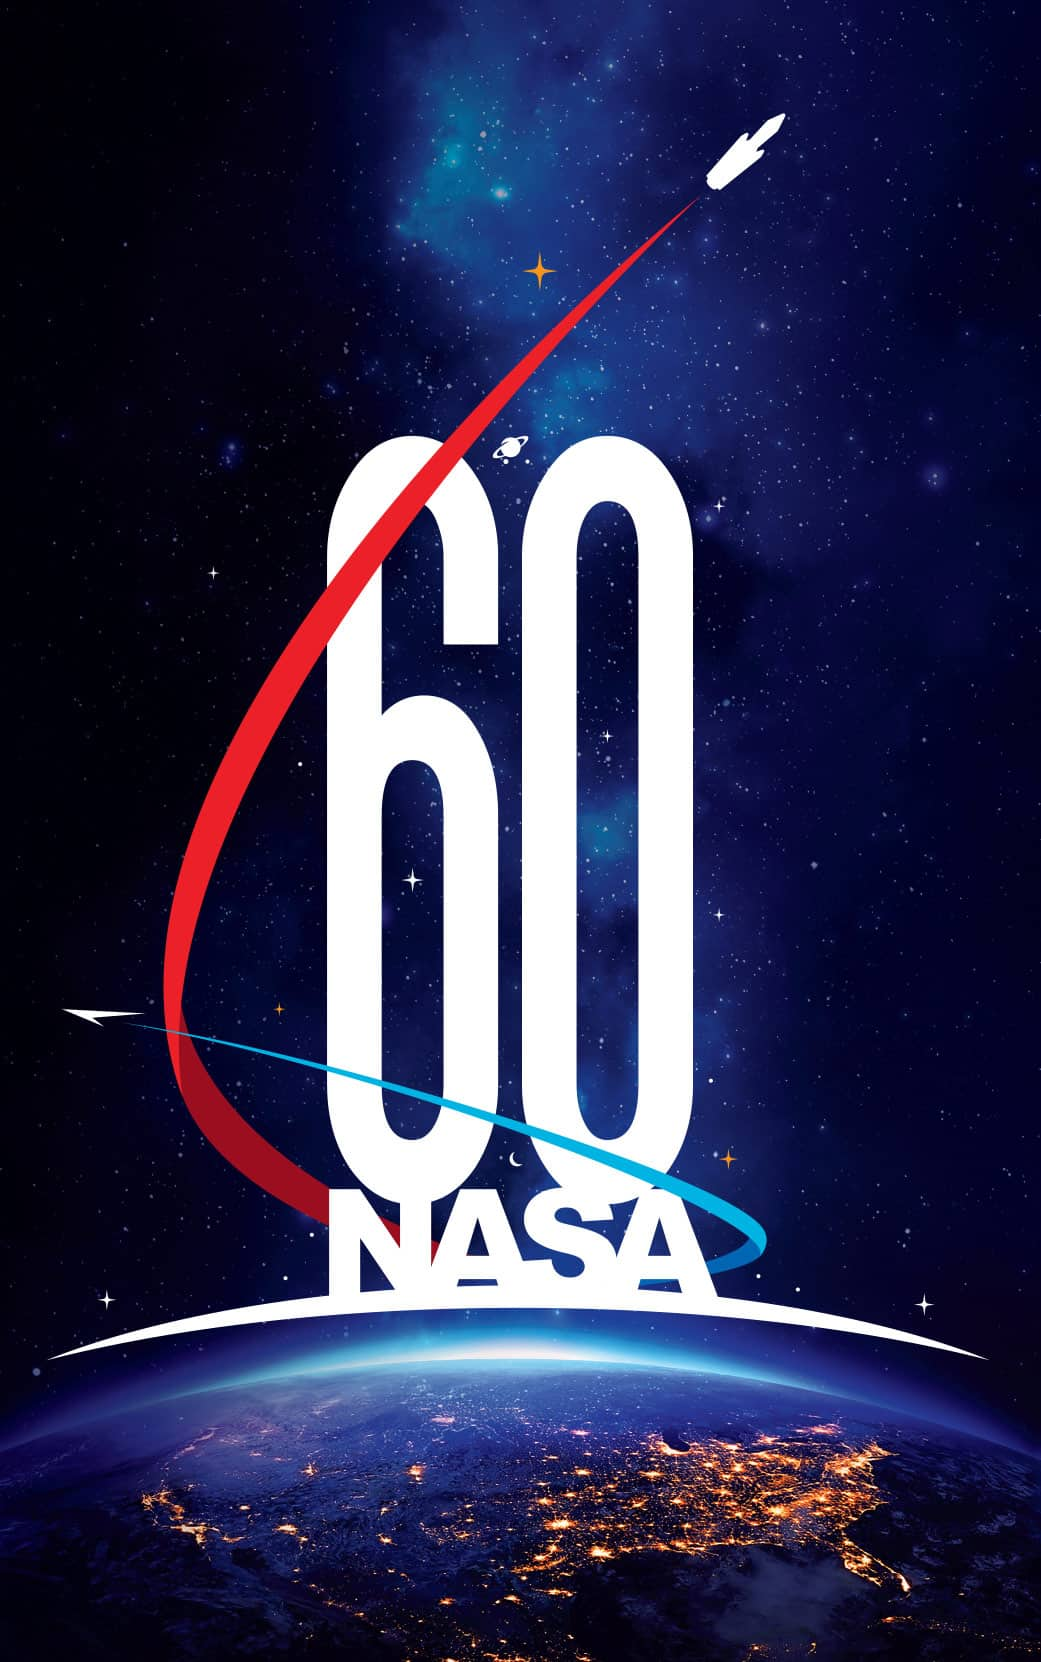 New nasa logo for upcoming 60th anniversary designed by matthew skeins the new nasa 60th anniversary logo designed by matthew skeins altavistaventures Image collections